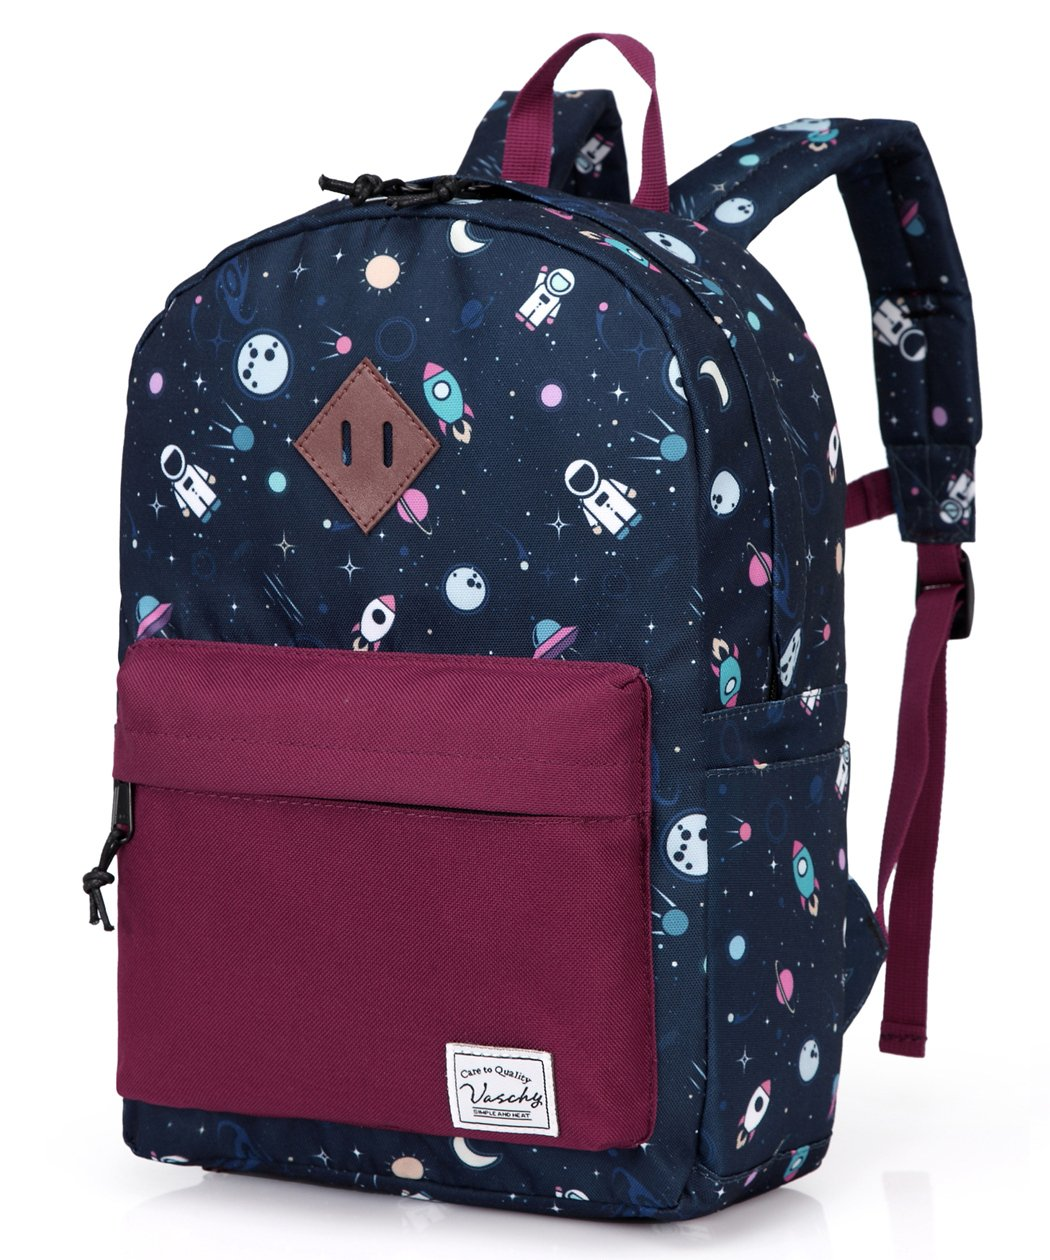 Preschool Toddler Backpack,Vaschy Little Kid Small Backpacks for Nursery School Children Boys and Girls with Chest Strap in Cute Astronaut by VASCHY